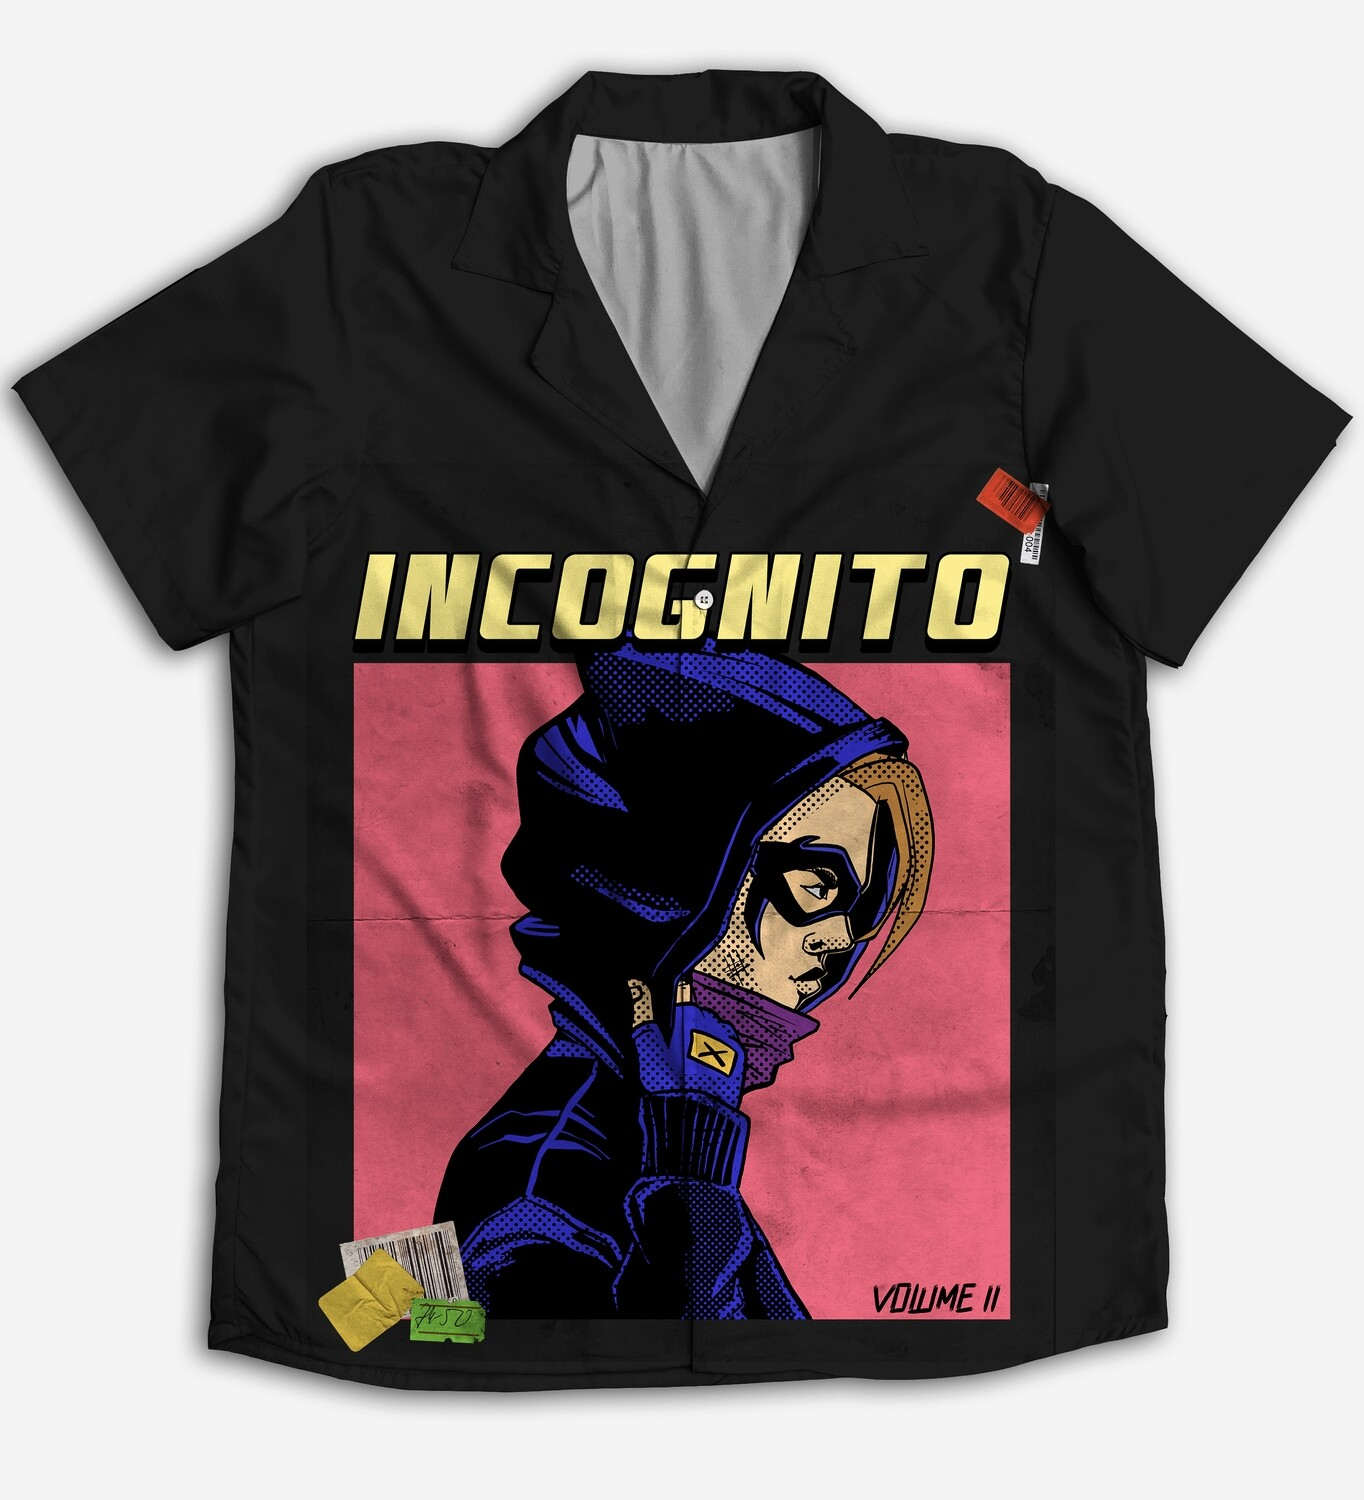 Incognito Buttoned Shirt